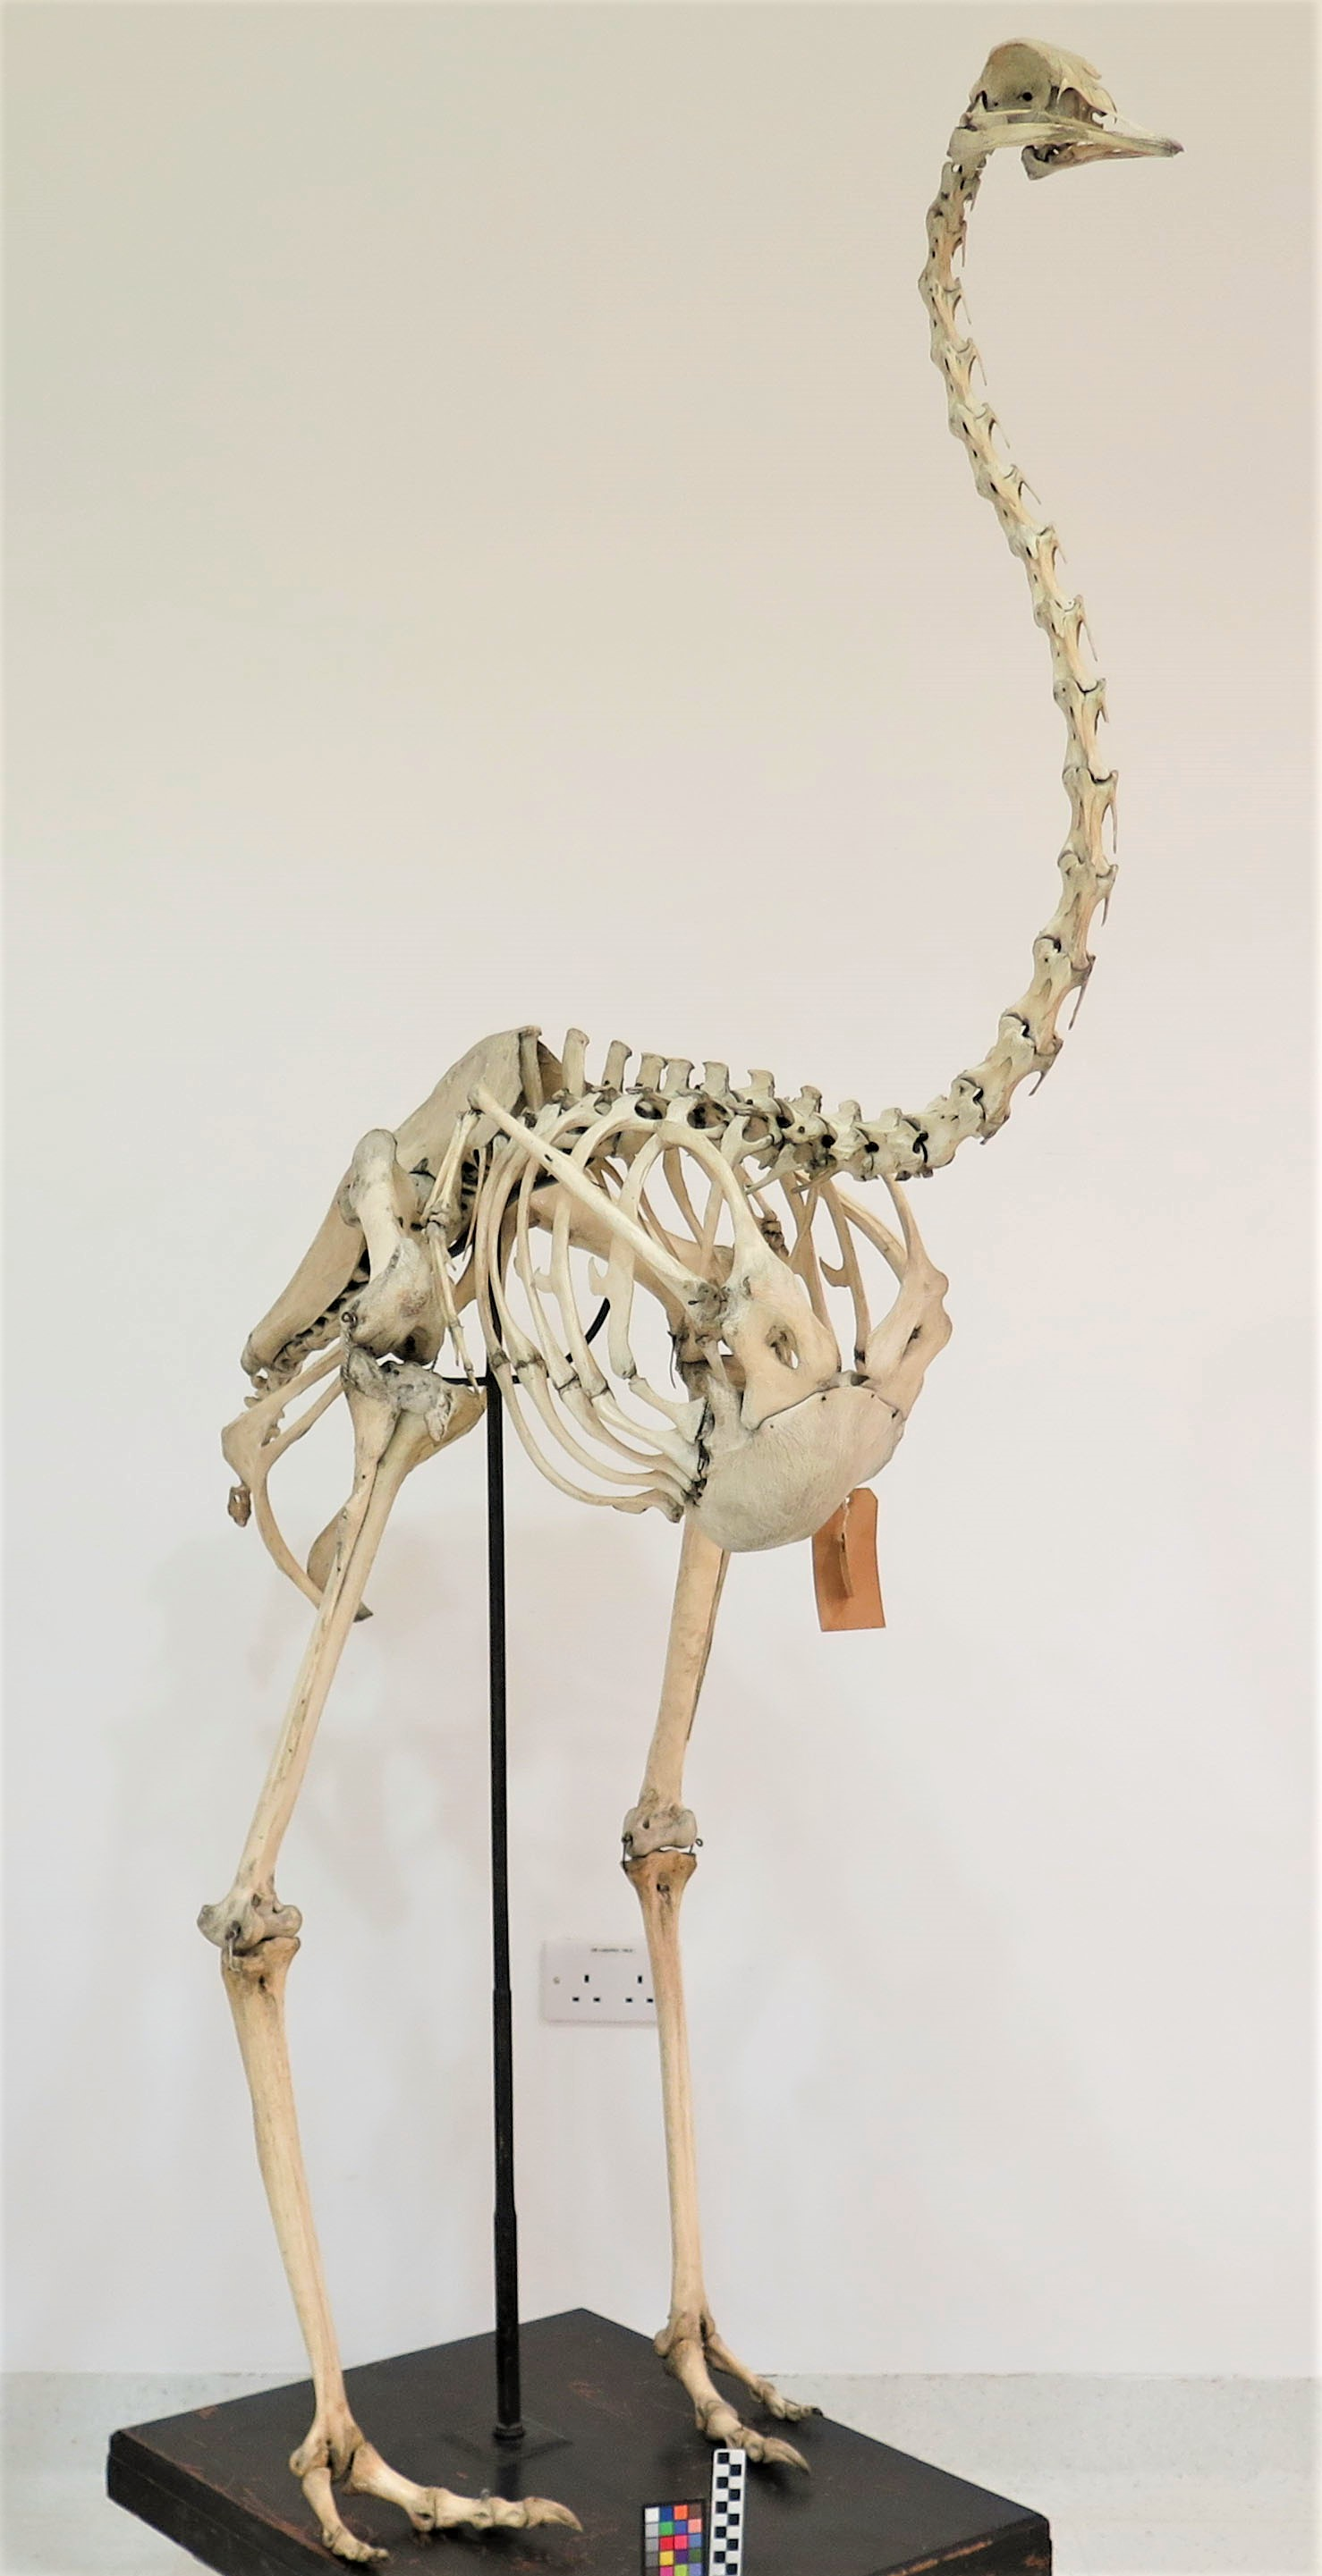 Photograph of the skeleton of an ostrich